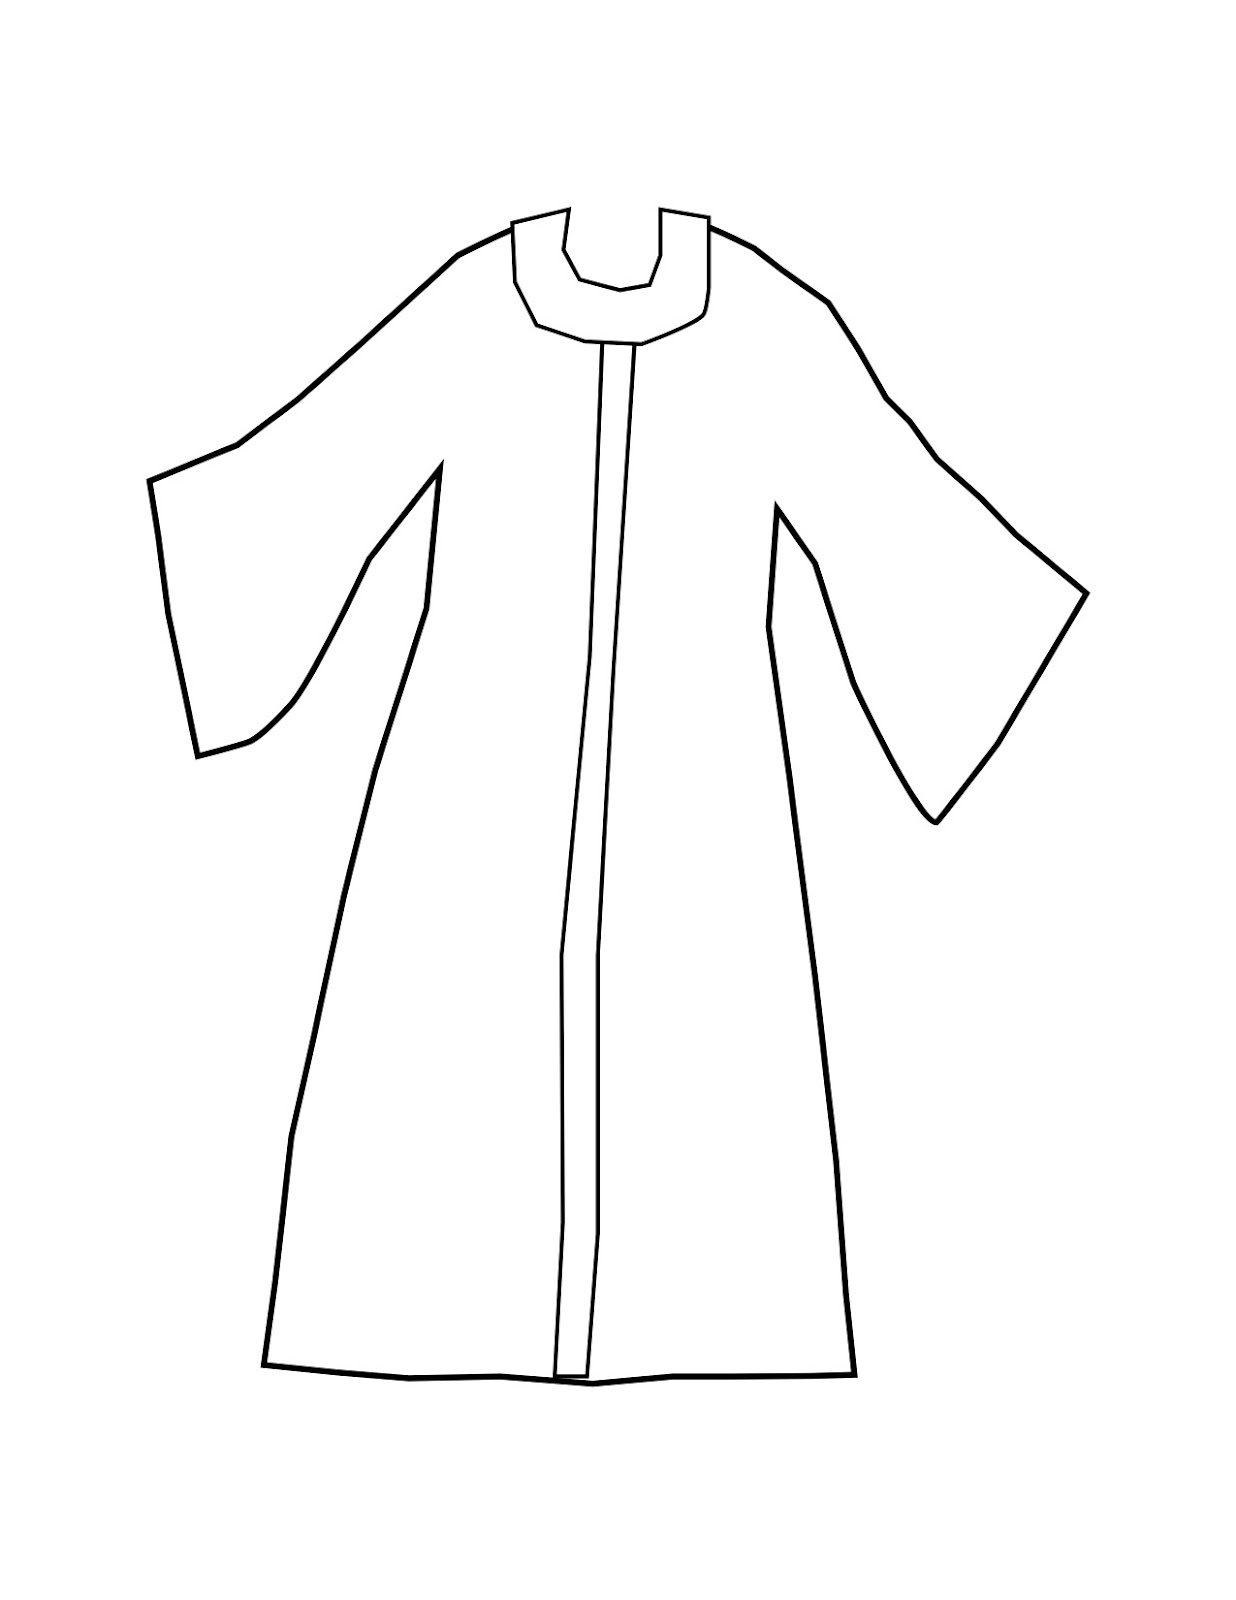 Charlotte 39 s clips and kindergarten kids joseph 39 s coat of for Joseph and the coat of many colors coloring page